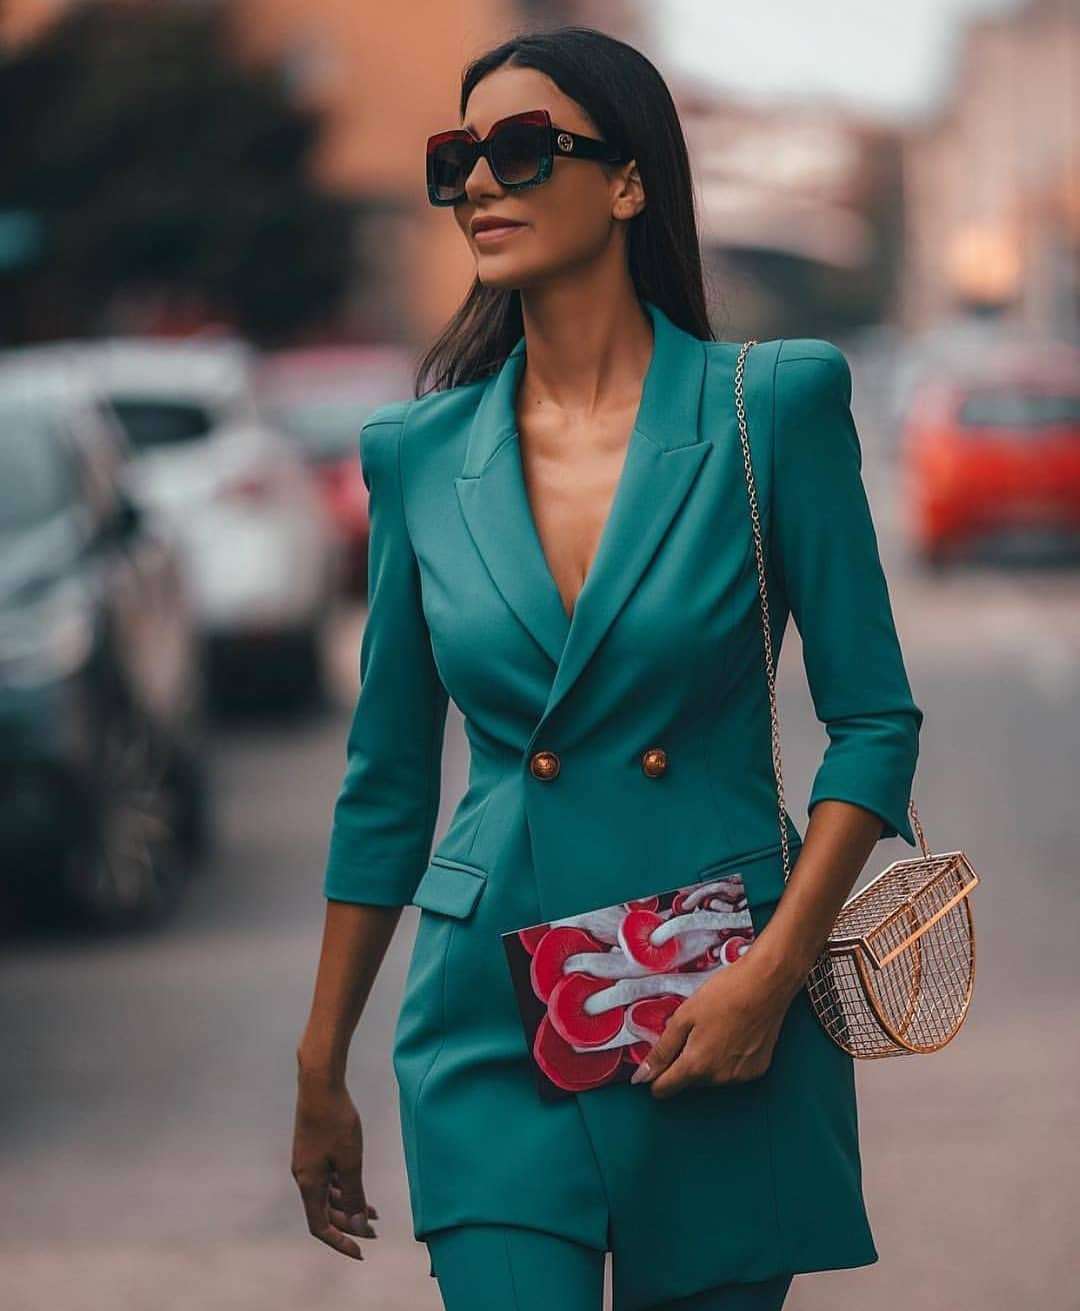 Turquoise Double-Breasted Pantsuit For Spring 2020